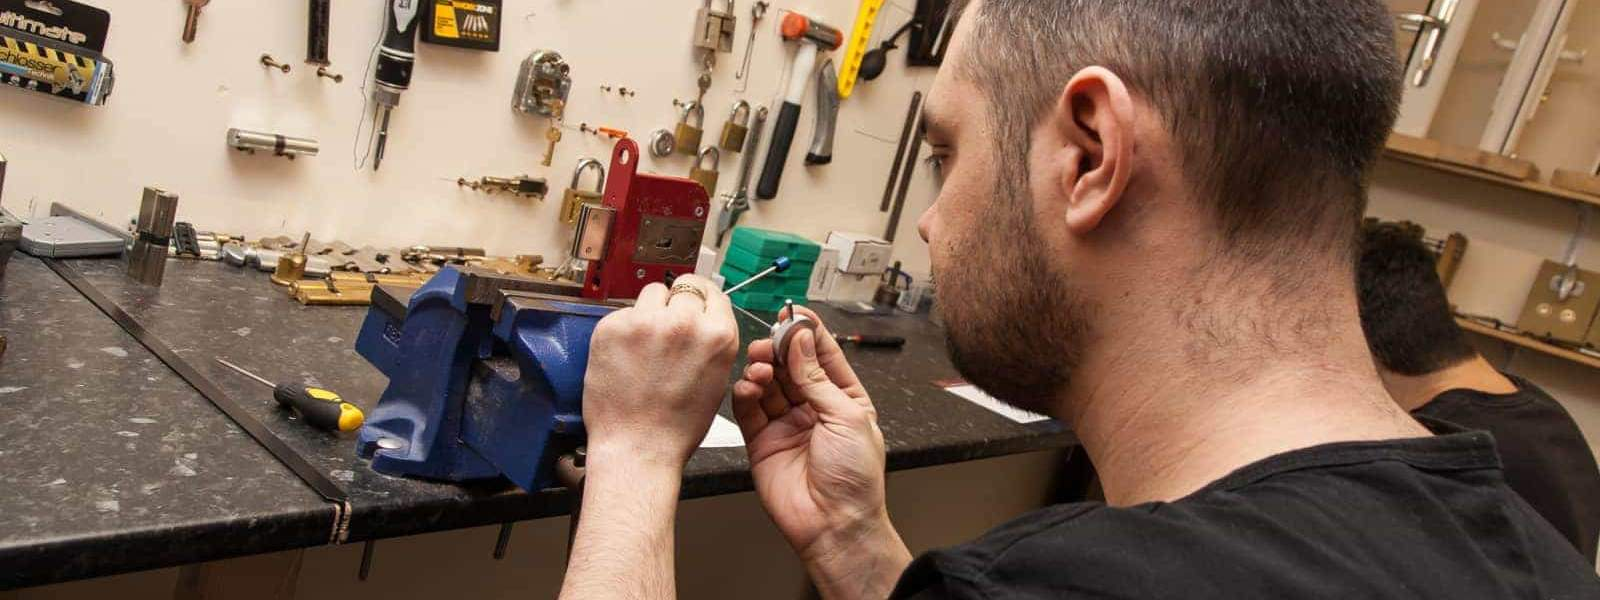 Locksmith Training - Lock Picking